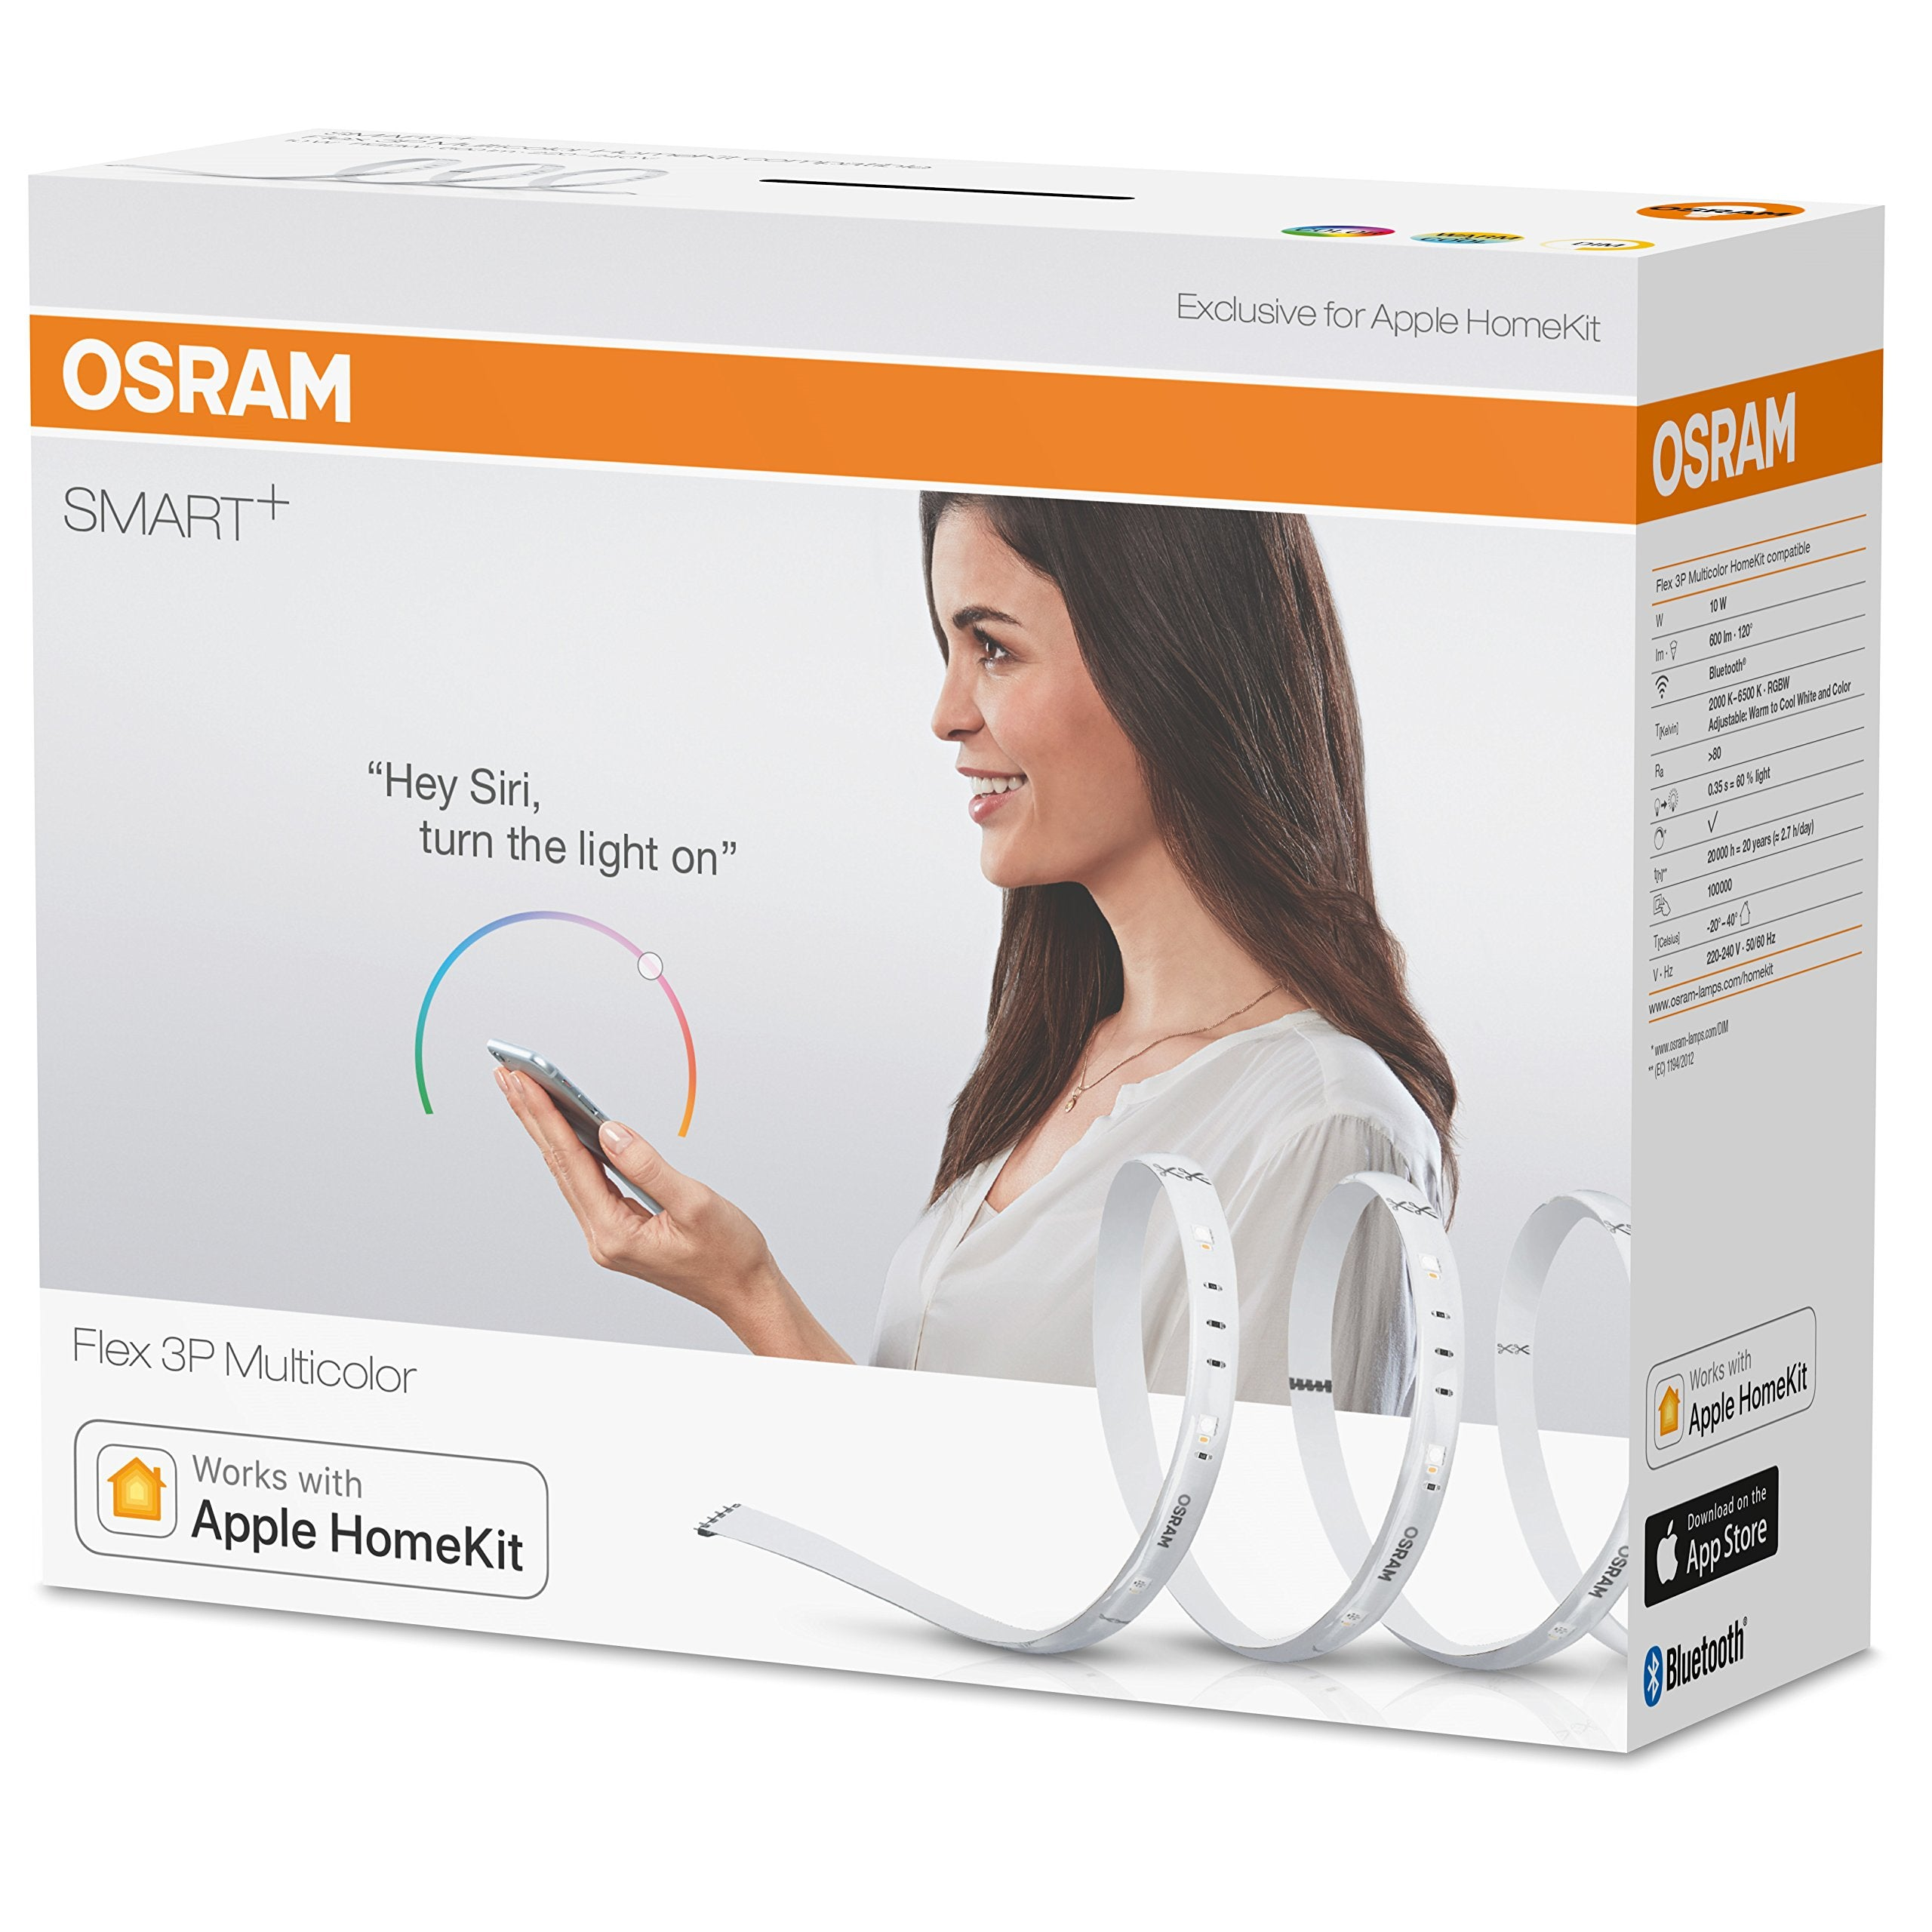 OSRAM Smart+ Lot de 4 Rubans LED Connectés | 1 8m | Dimmable | 16 Millions de couleurs | 10W | Bluetooth - Compatible Siri sur Apple & Alexa sur Andr